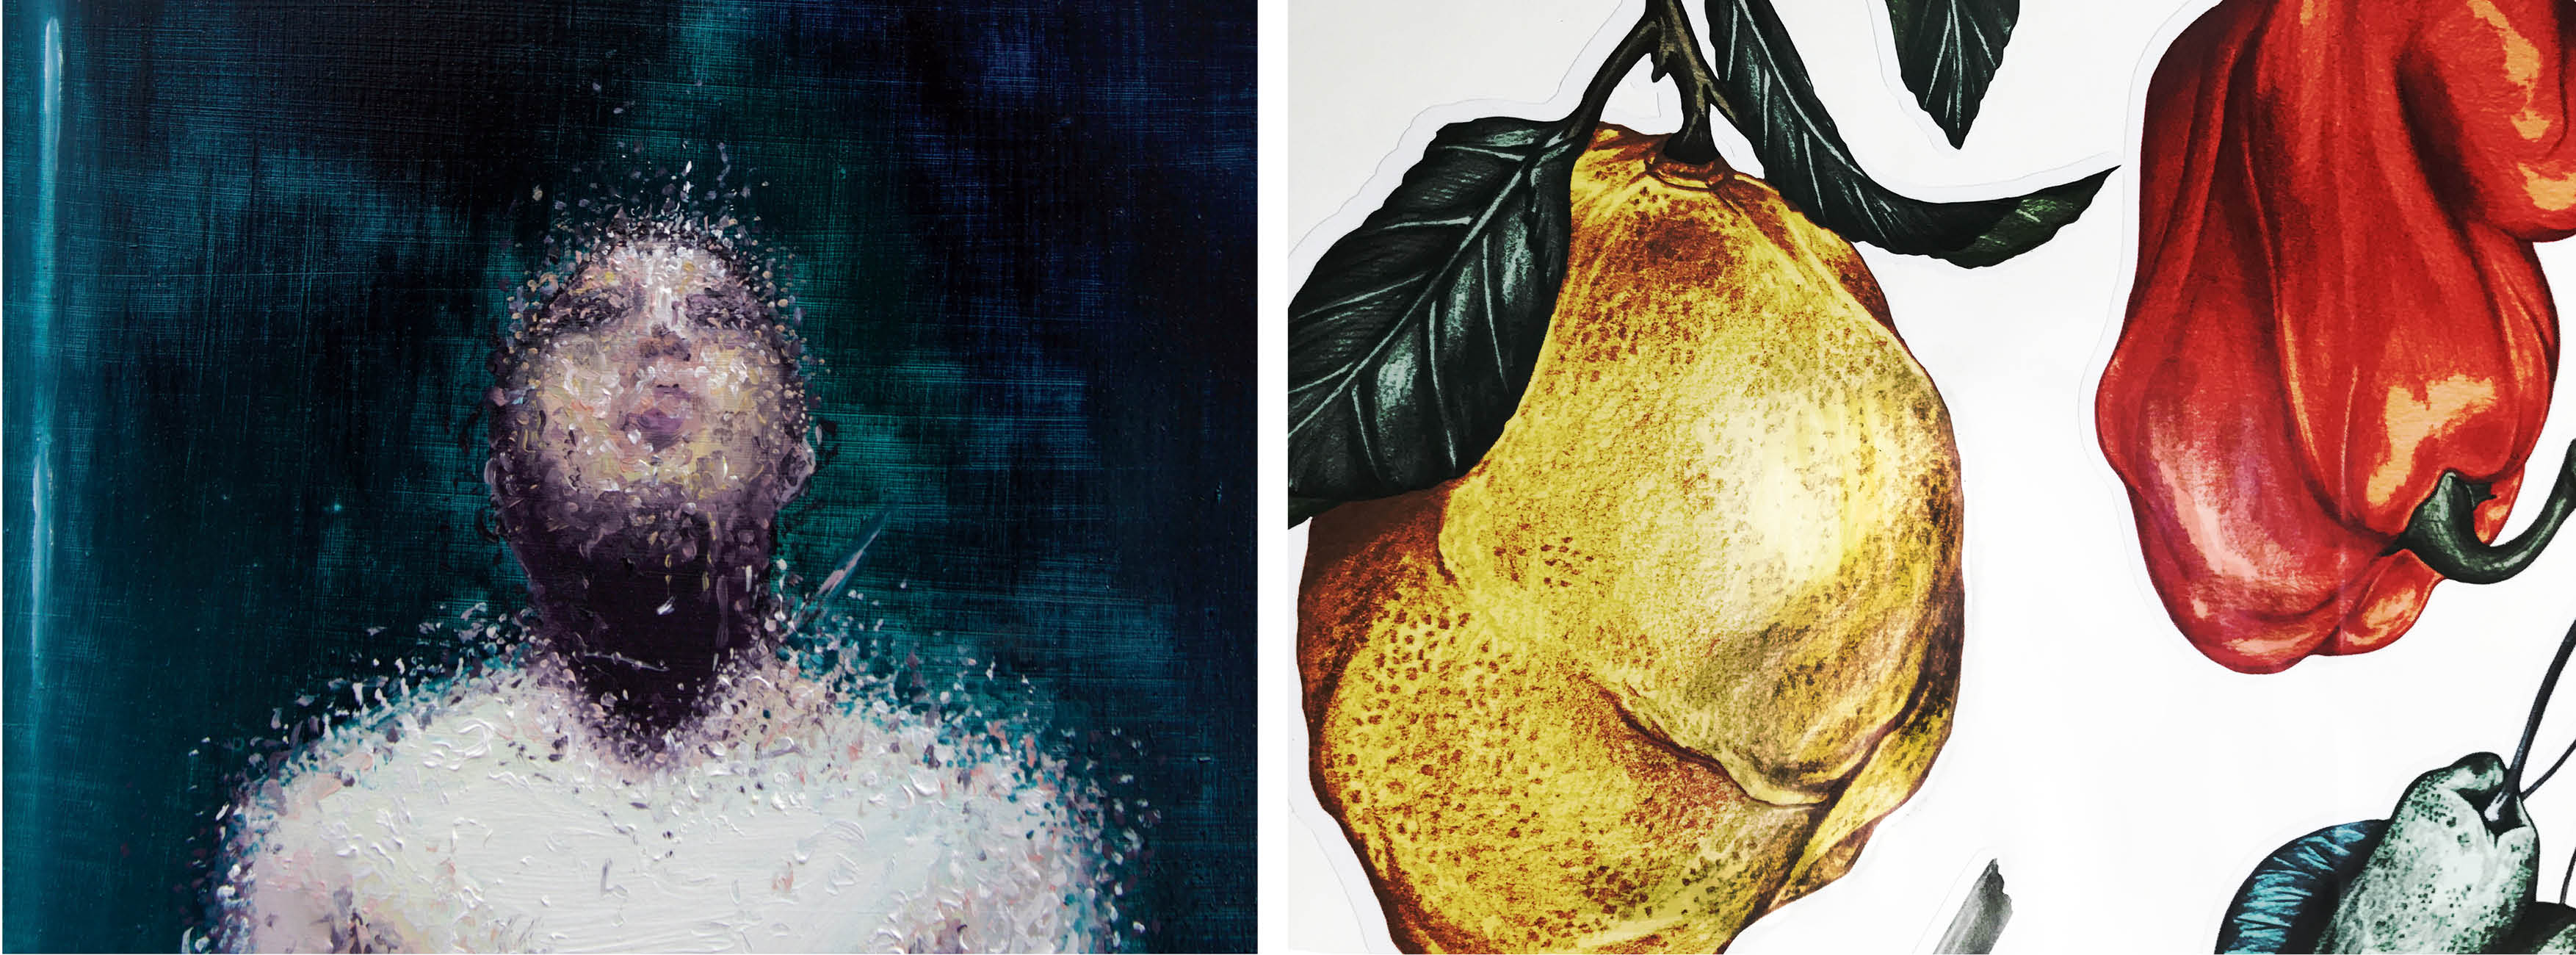 fine art print reproduction of painting by Bobby Baker. Illustrations of fruit printed to white vinyl